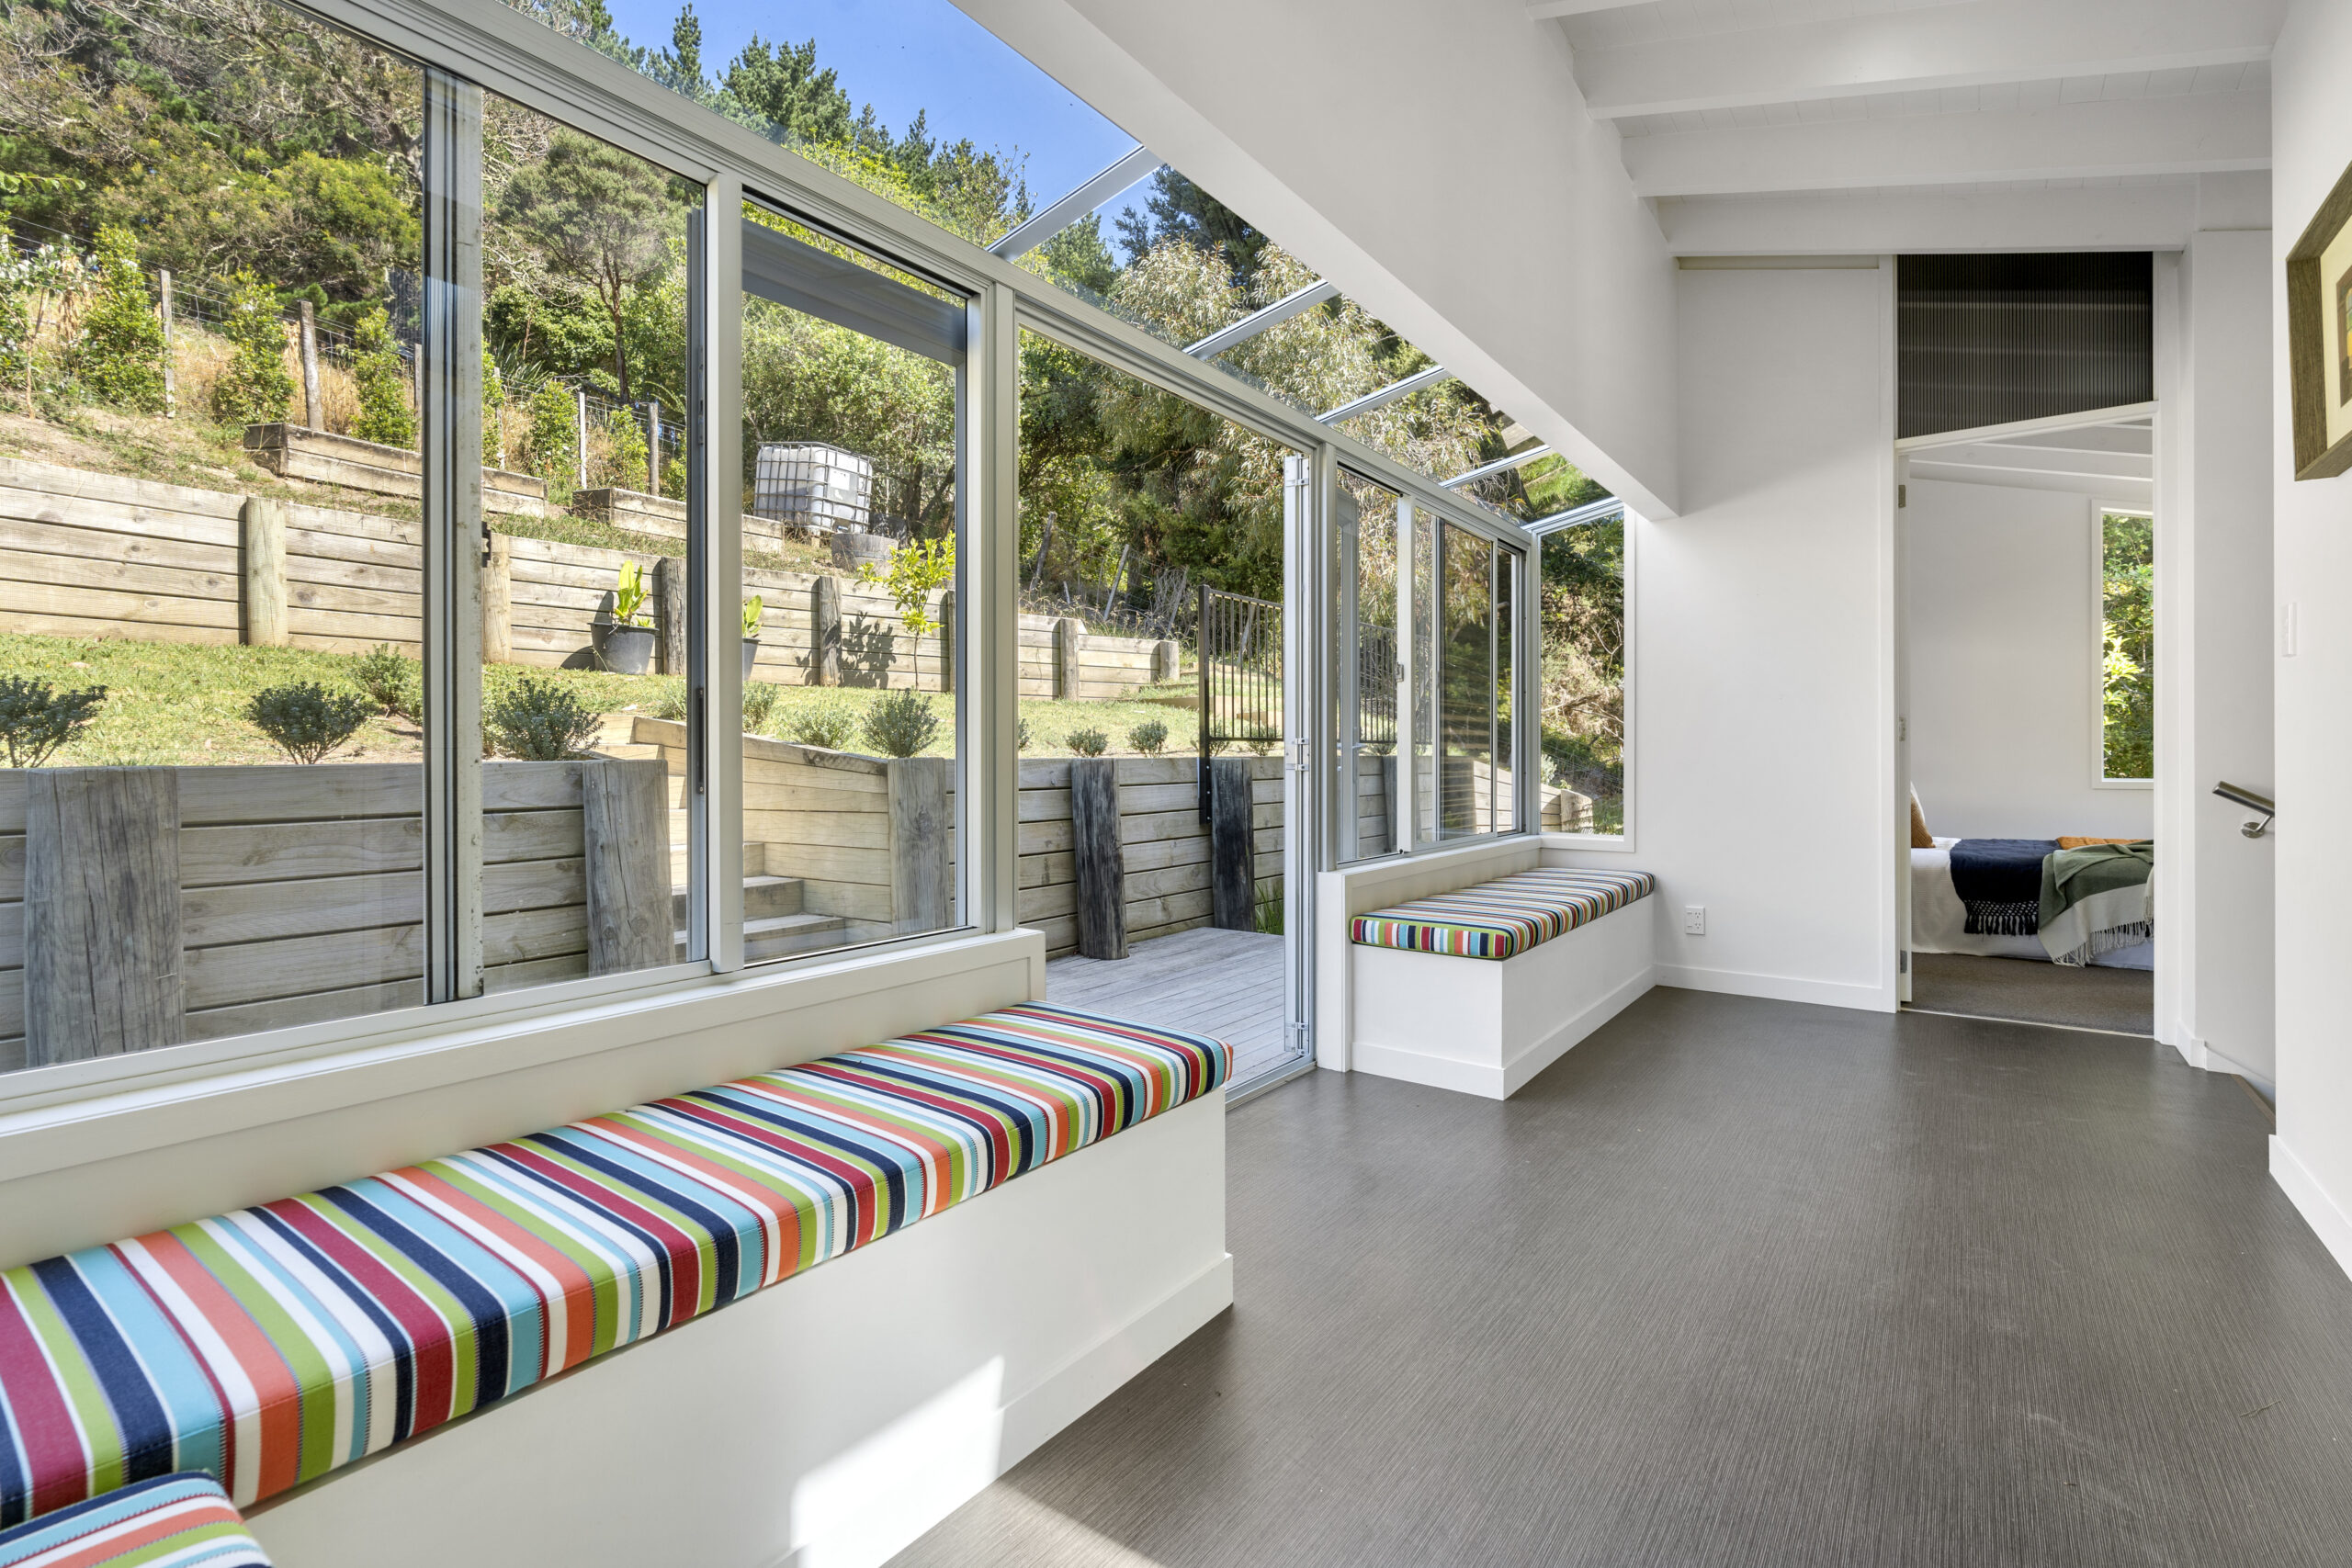 28.-Upstairs-seating-area-looking-out-to-back-deck-and-view-of-one-bedroom-scaled.jpg